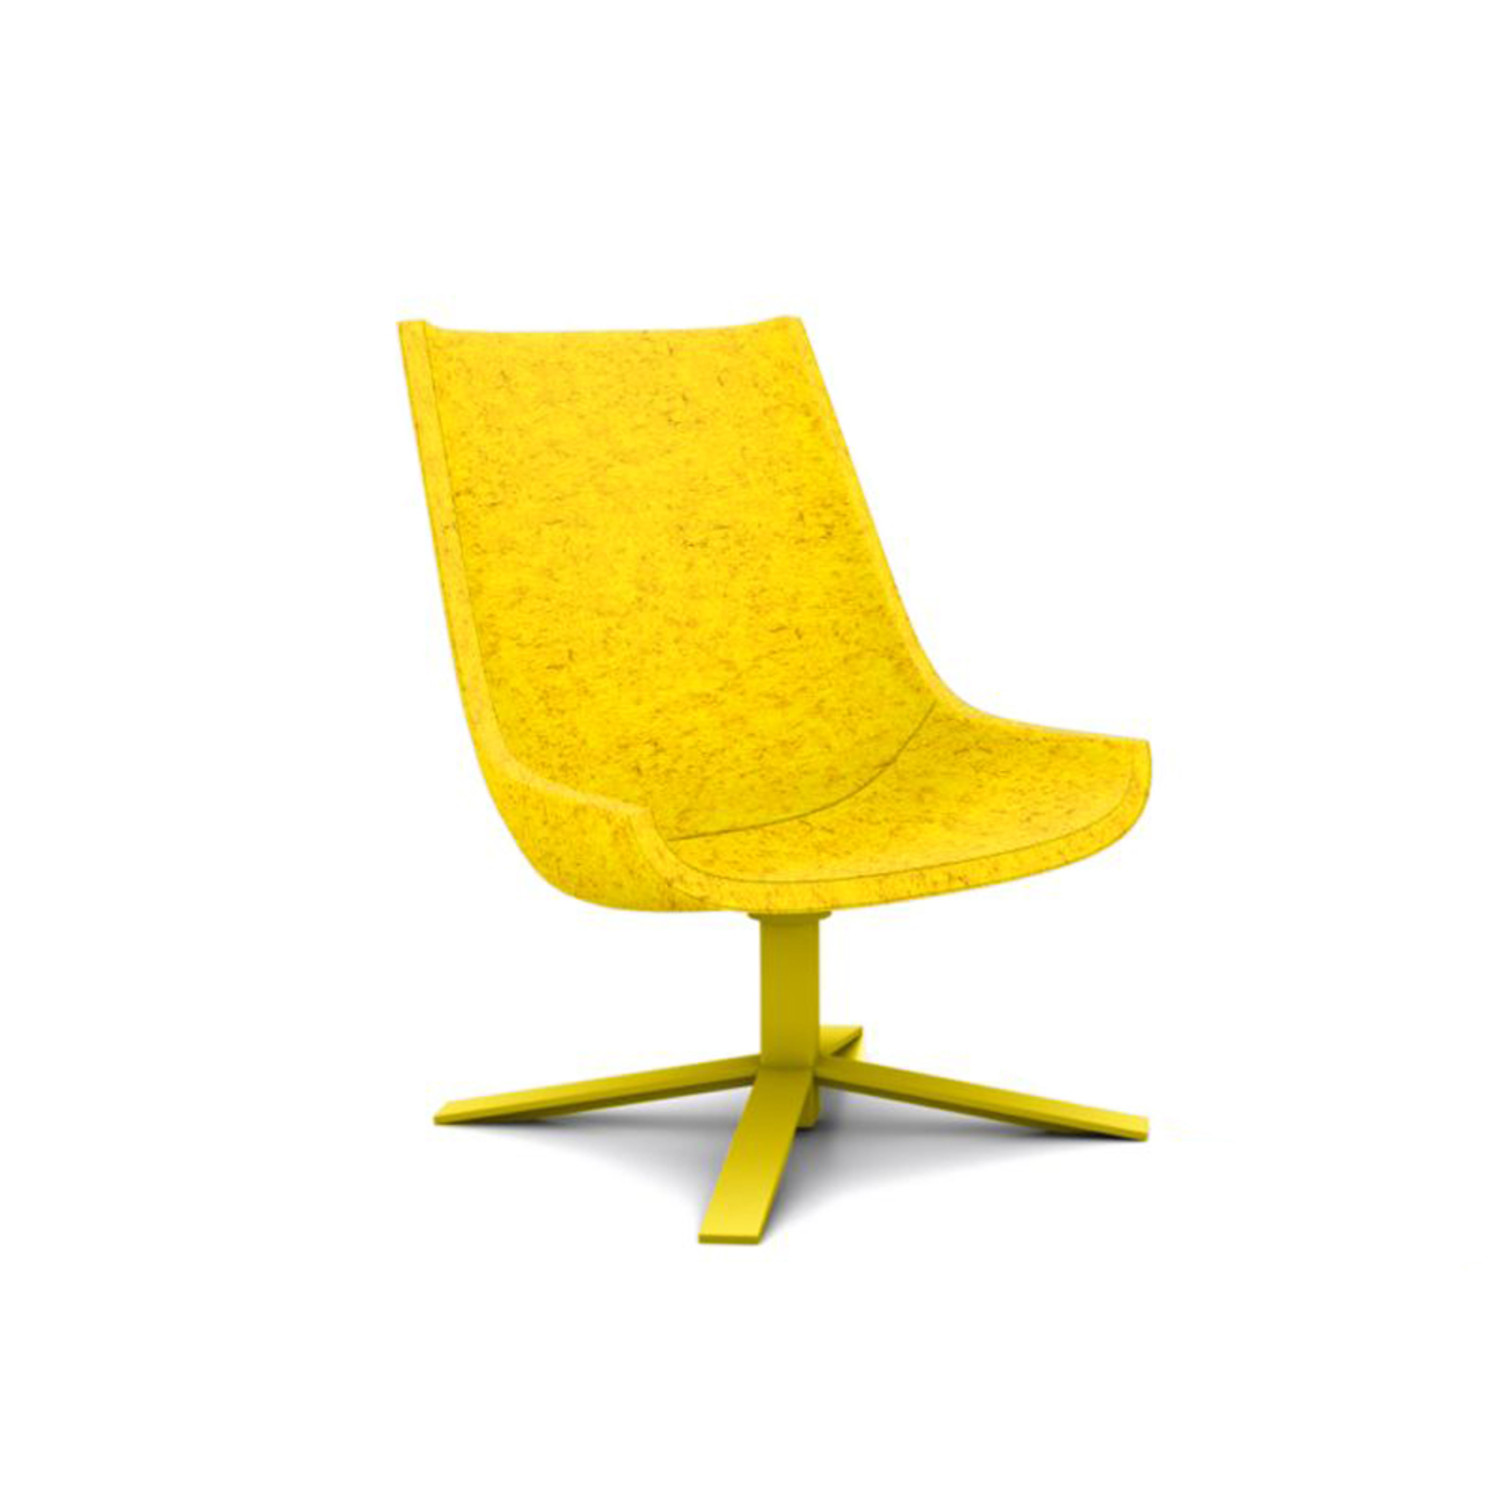 Incredible Windowseat Lounge Chair Chartruese Haworth Touch Of Modern Ibusinesslaw Wood Chair Design Ideas Ibusinesslaworg